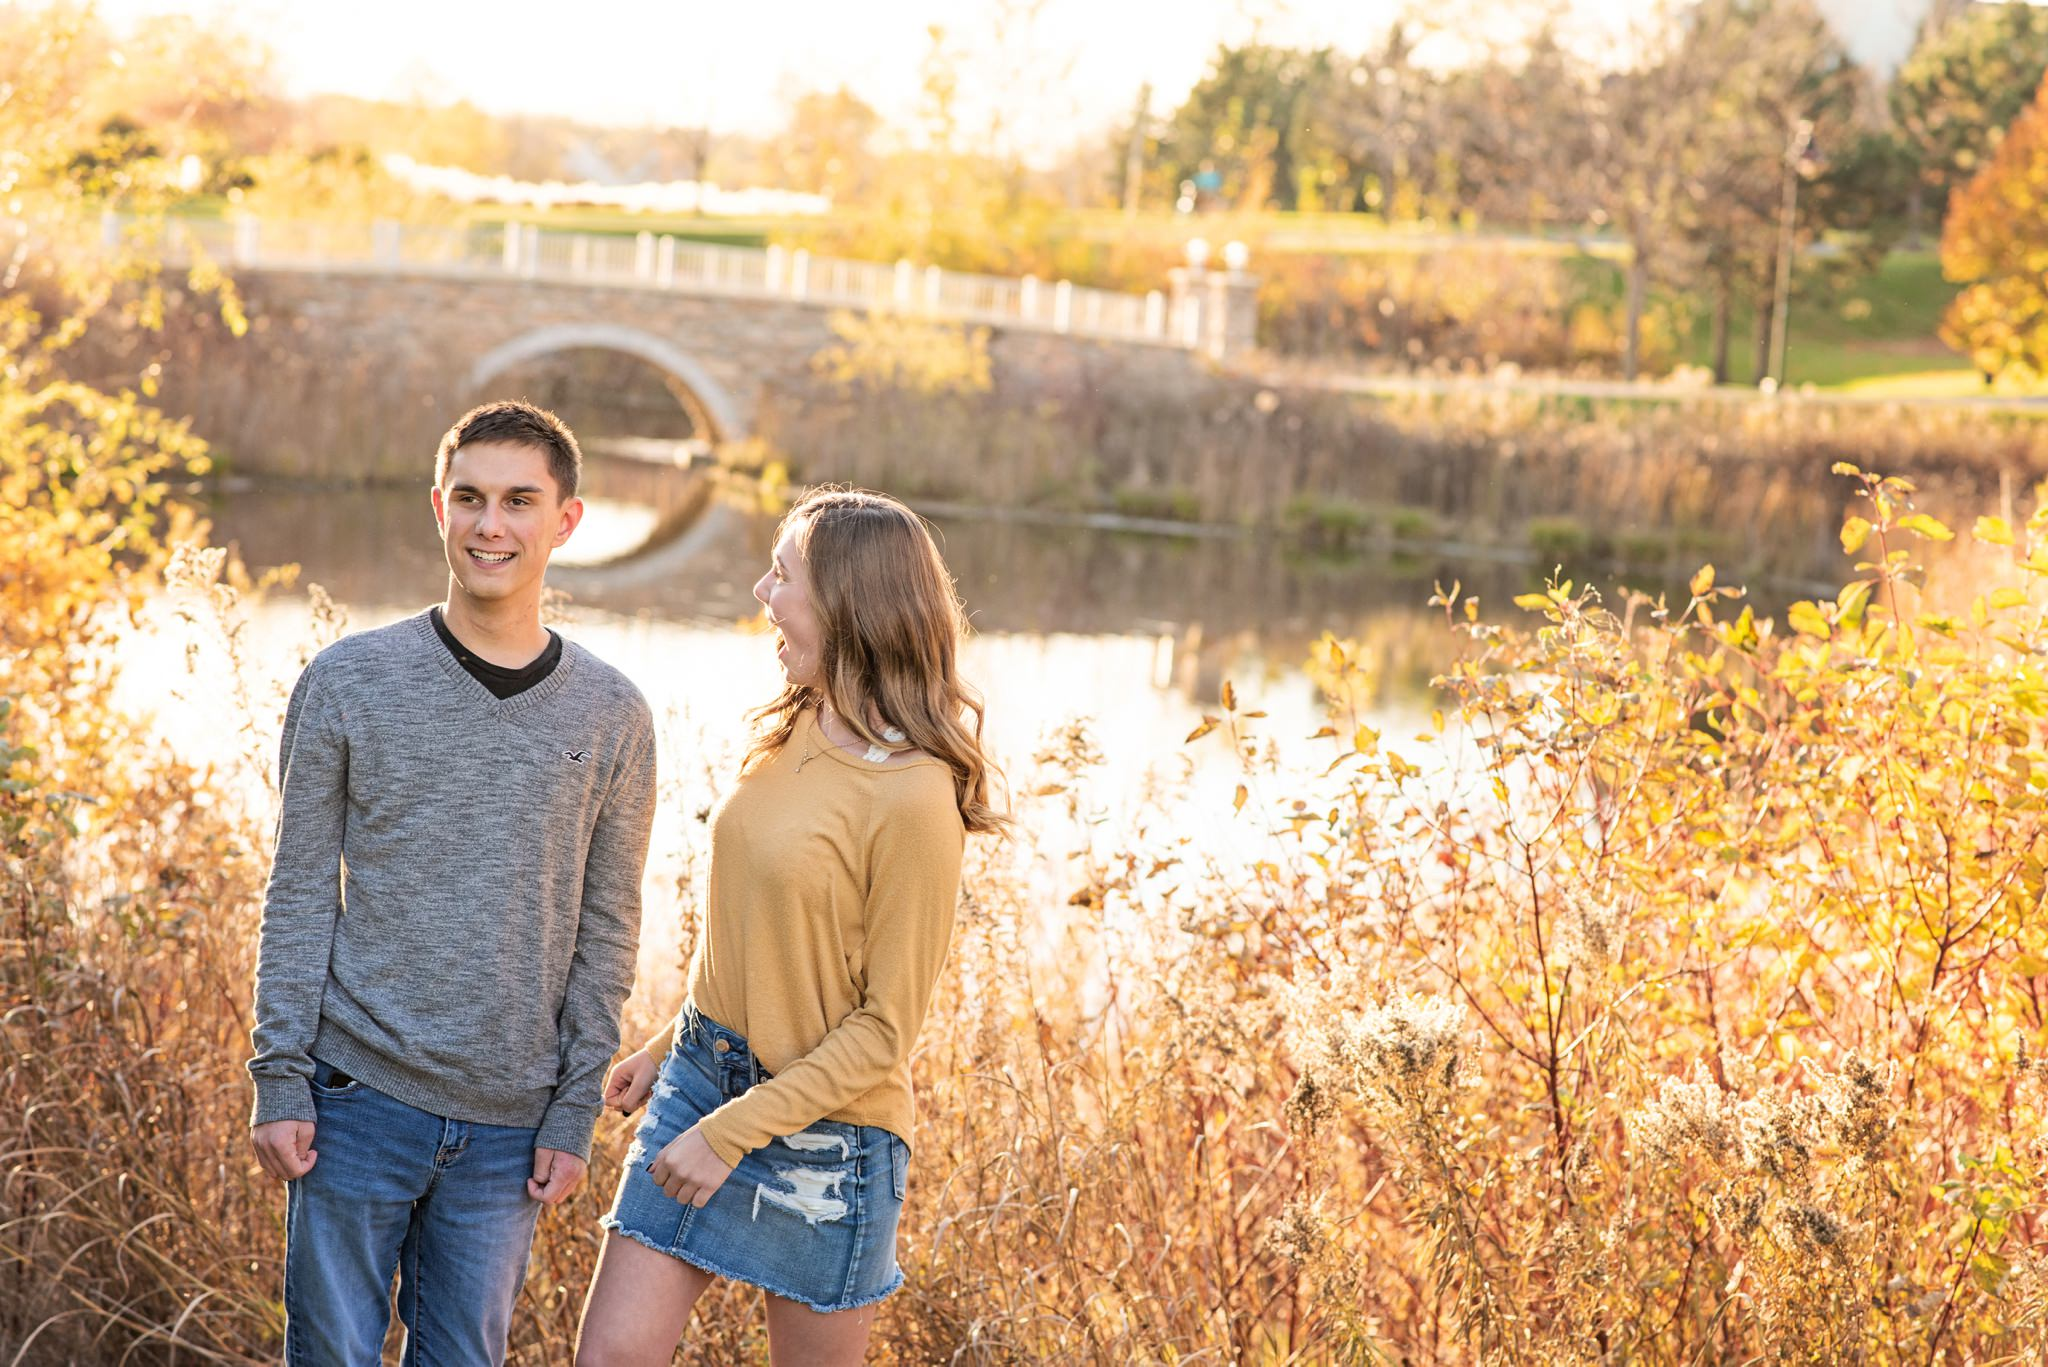 Wittwer-Family-Rotella-Photography-2018-13_WEB.jpg